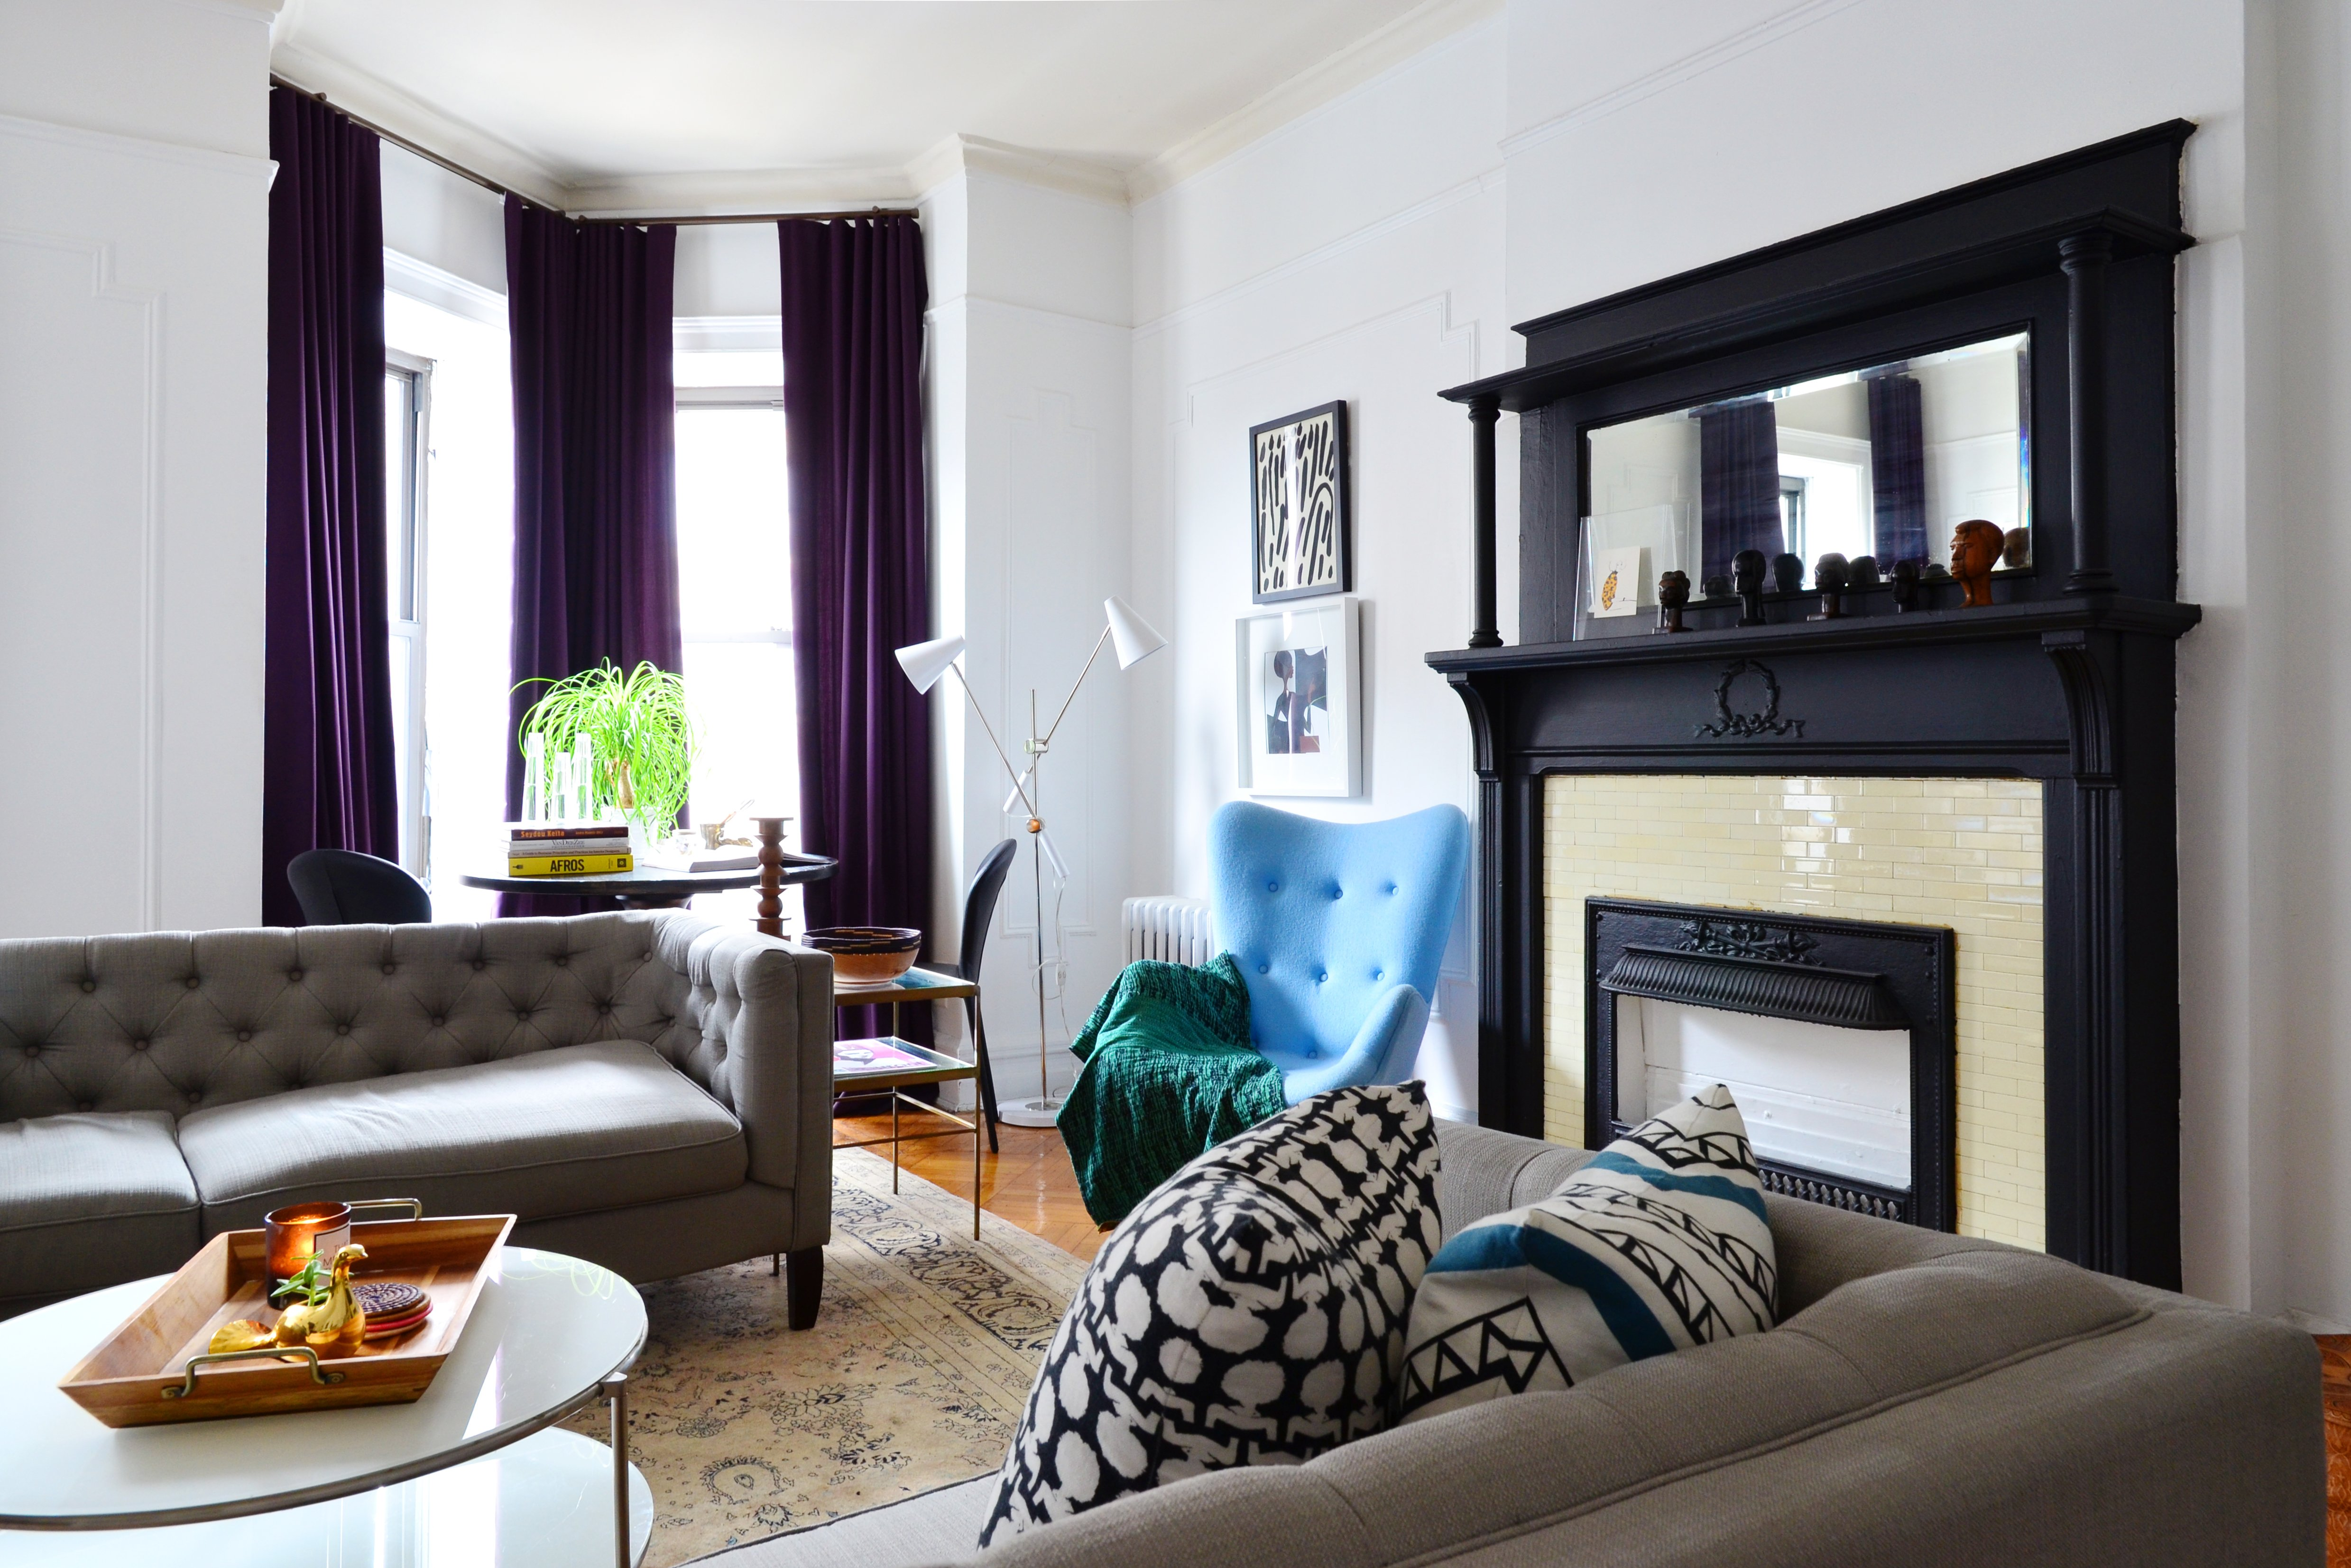 Why You Should Face Sofas to Save Space | Apartment Therapy